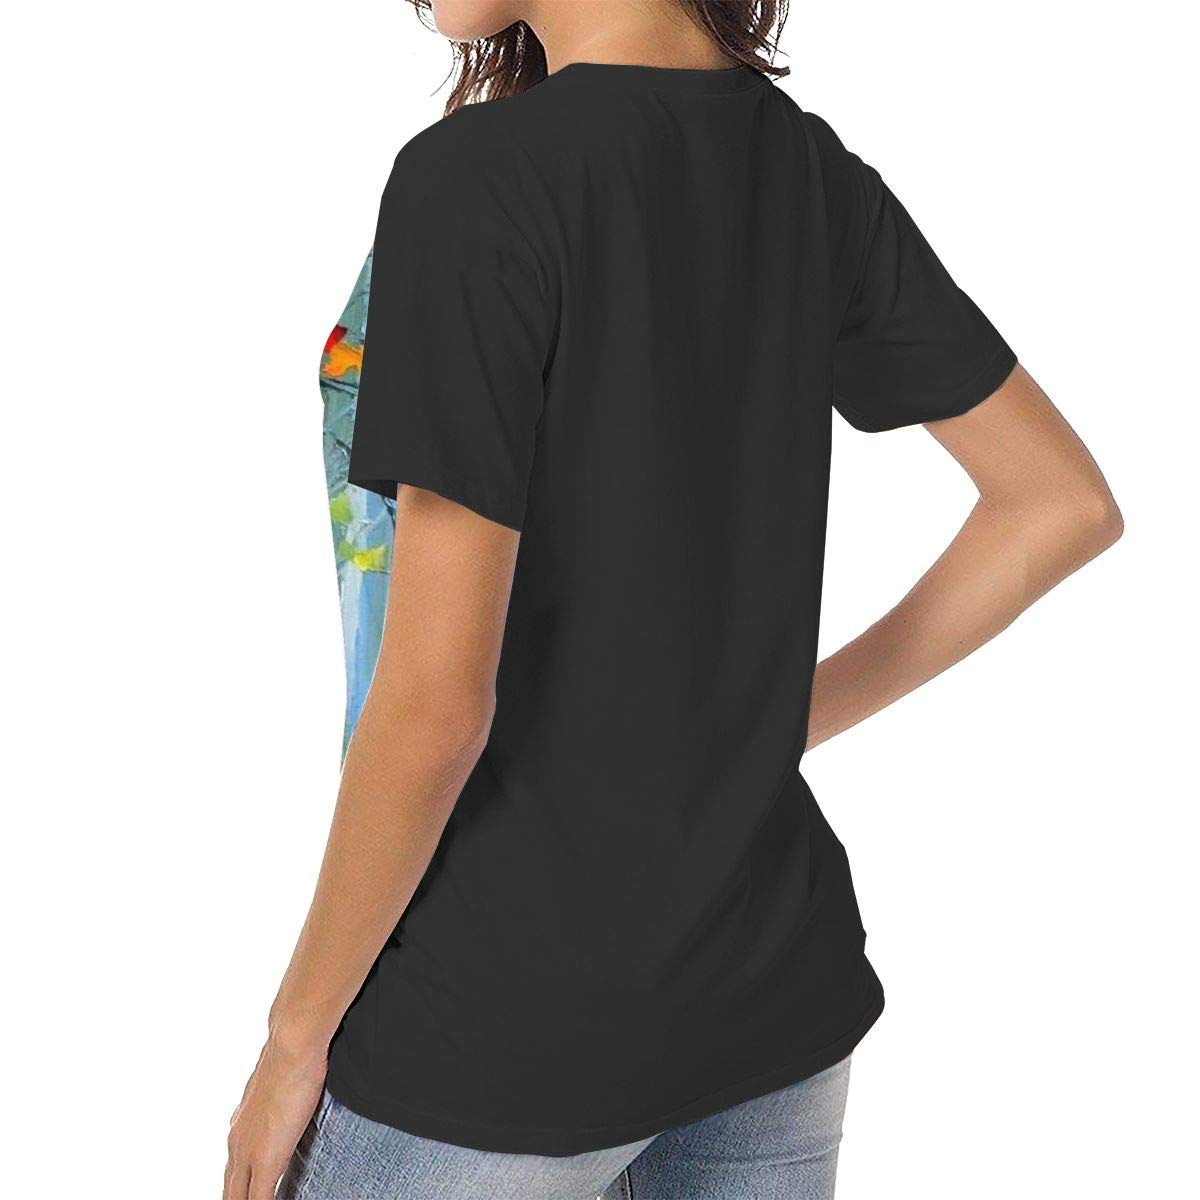 Laki-co Womens Summer Short Sleeve Forest Trail with Fall Maples Casual Raglan Tee Baseball Tshirts Tops Blouse